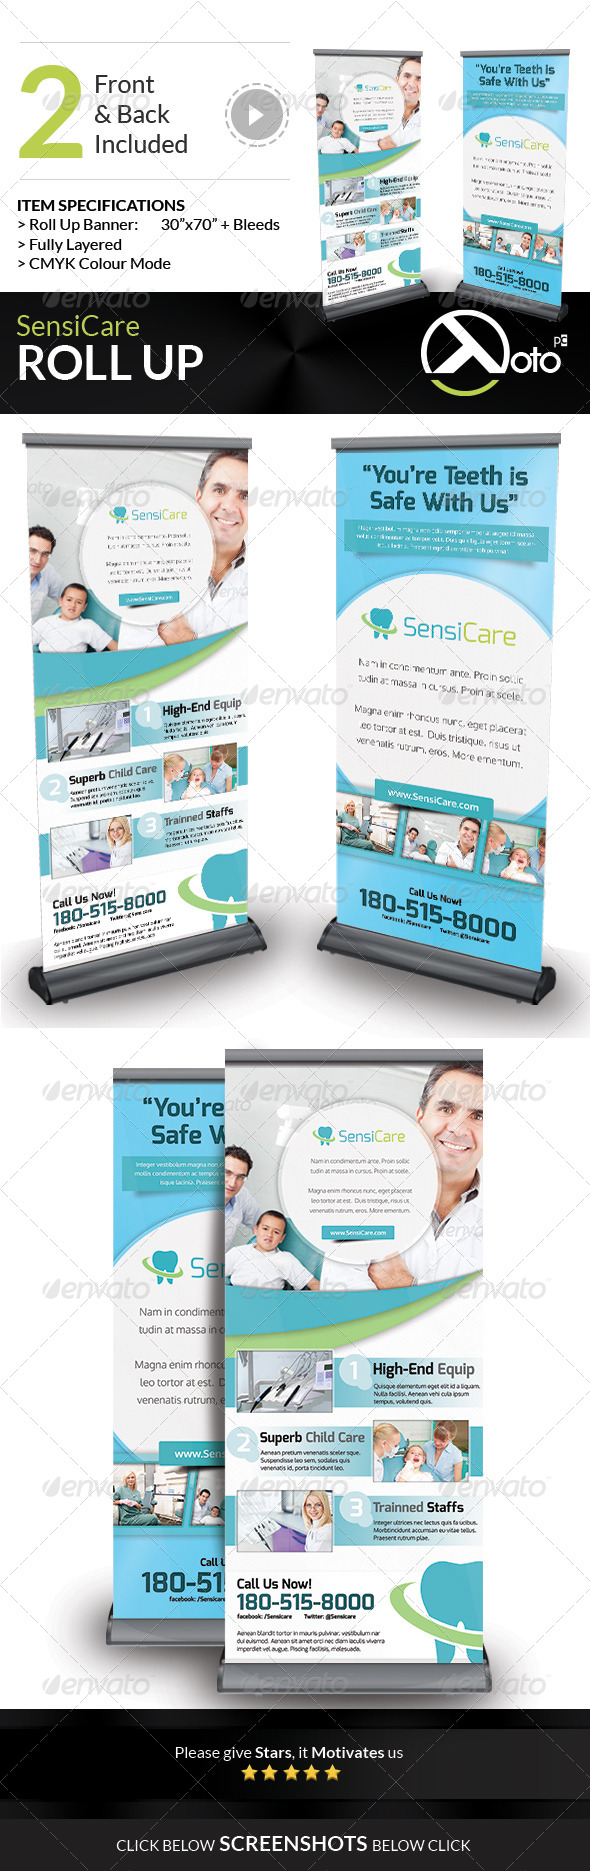 SensiCare Medical Dental Health Roll Up